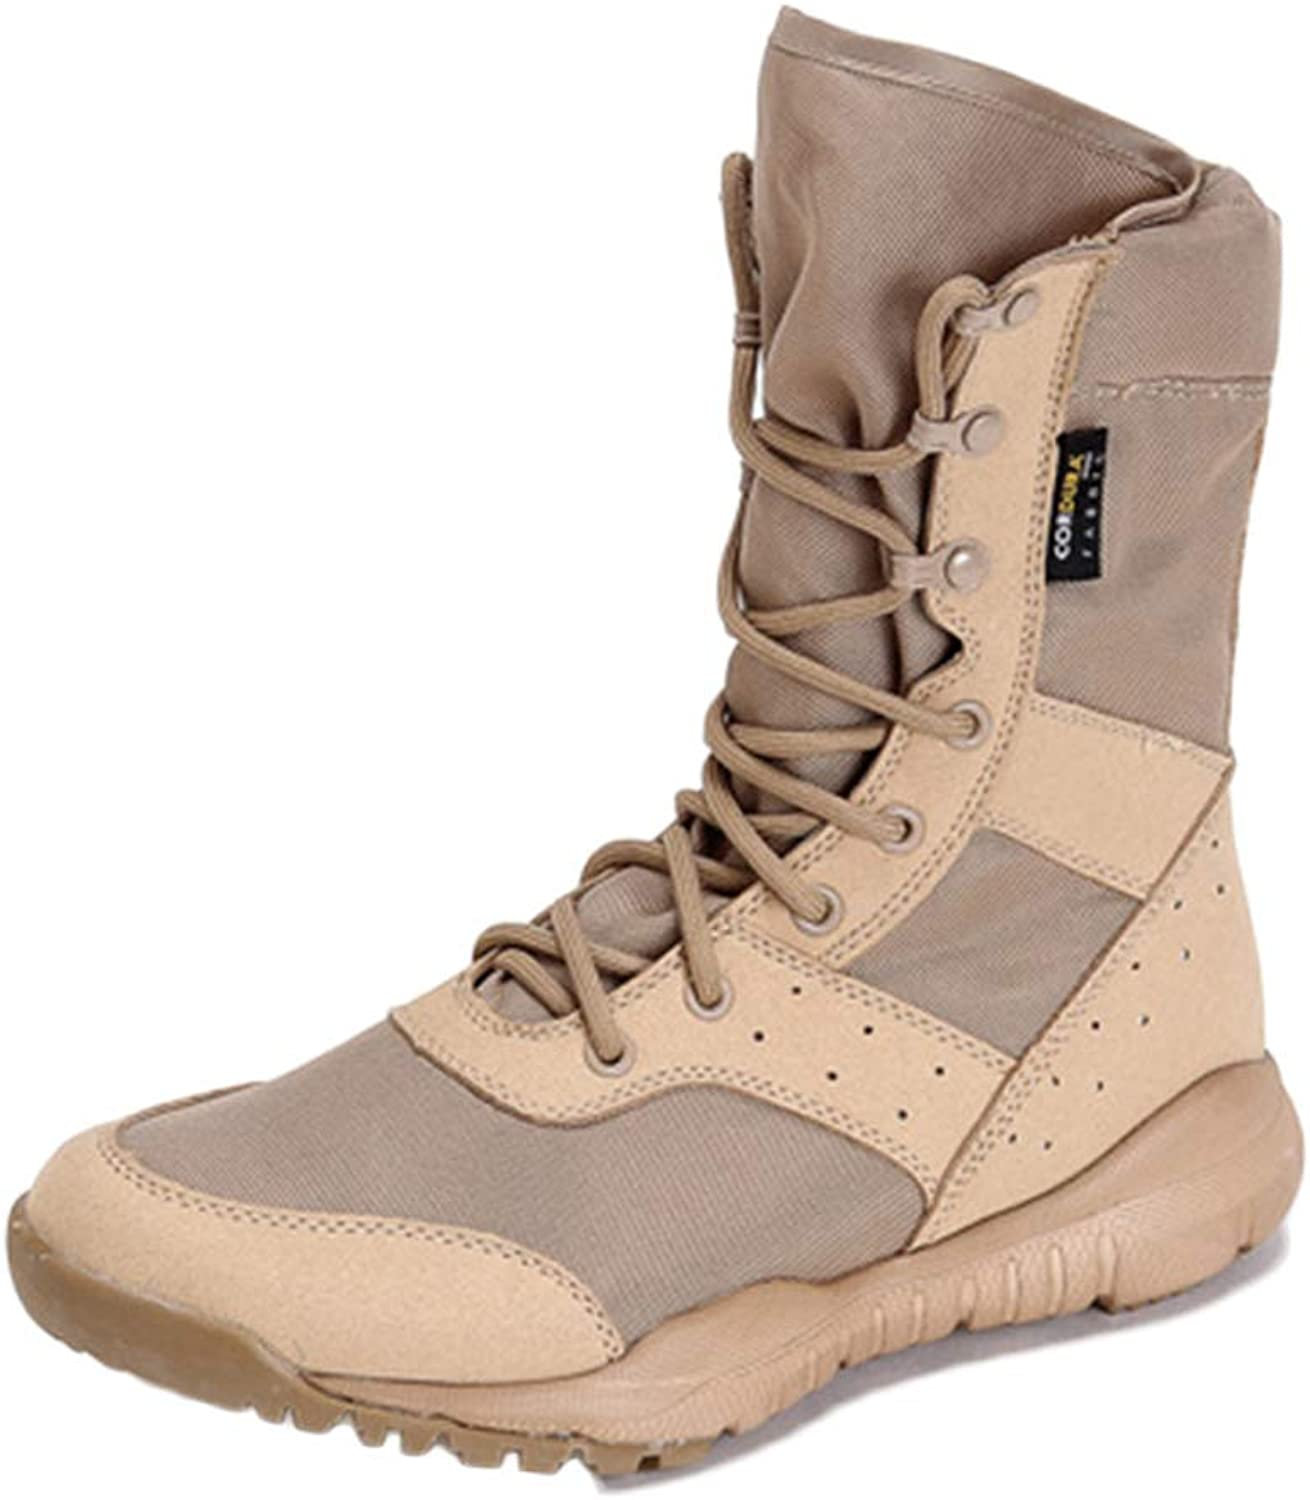 Snfgoij Tactical Boots Men Sand Patrol Breathable Lightweight Outdoor Military Boots Mountaineering Wear-Resistant High-top